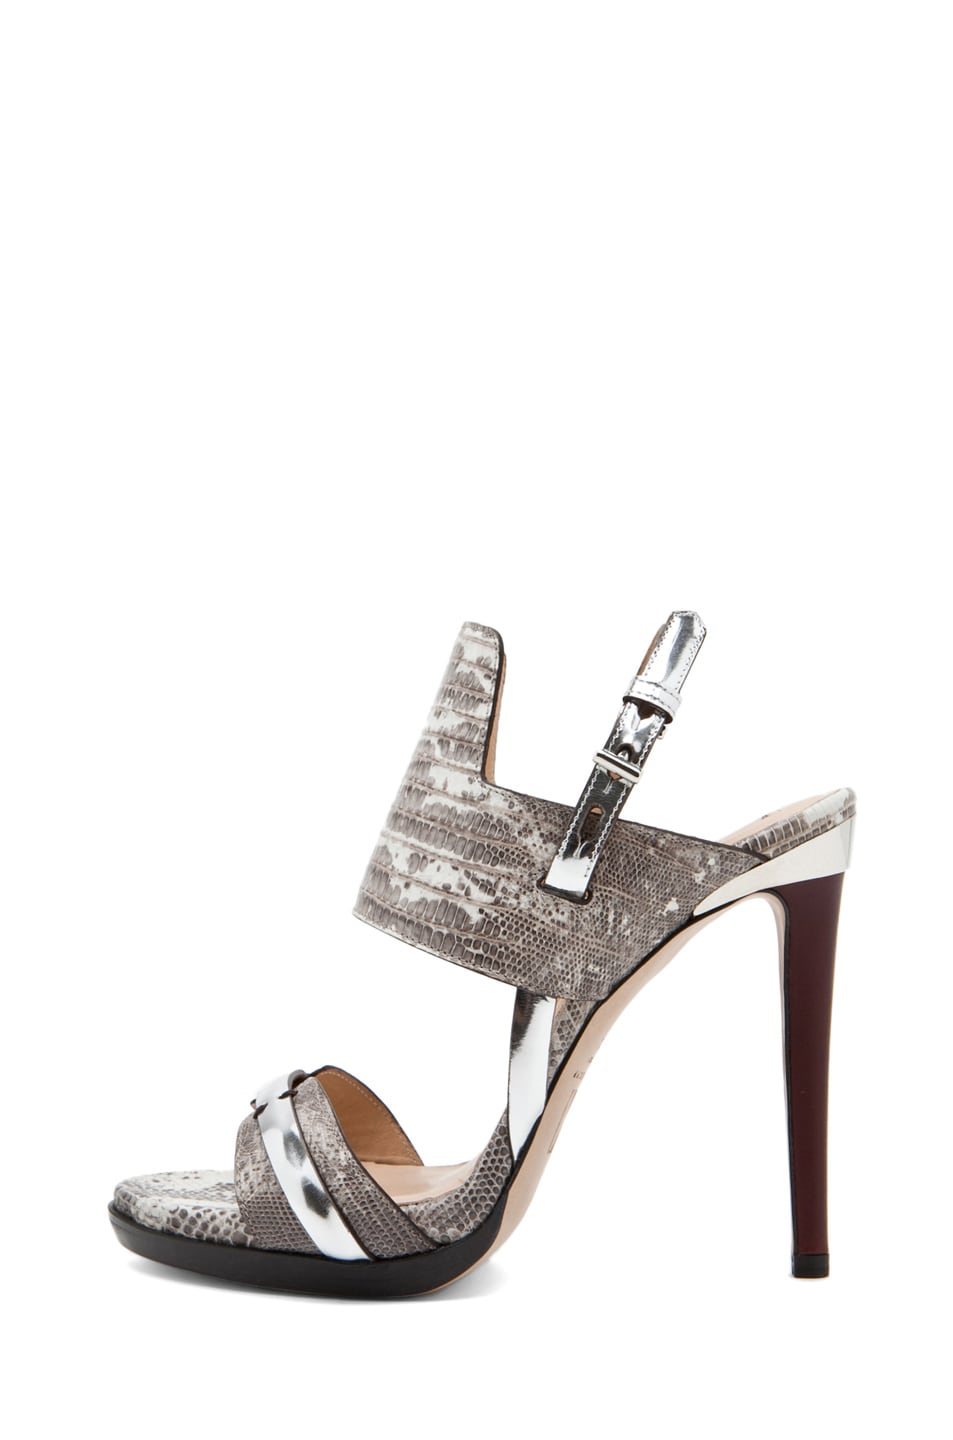 Image 1 of Reed Krakoff Heel in Black Multi/Silver/Cordovan